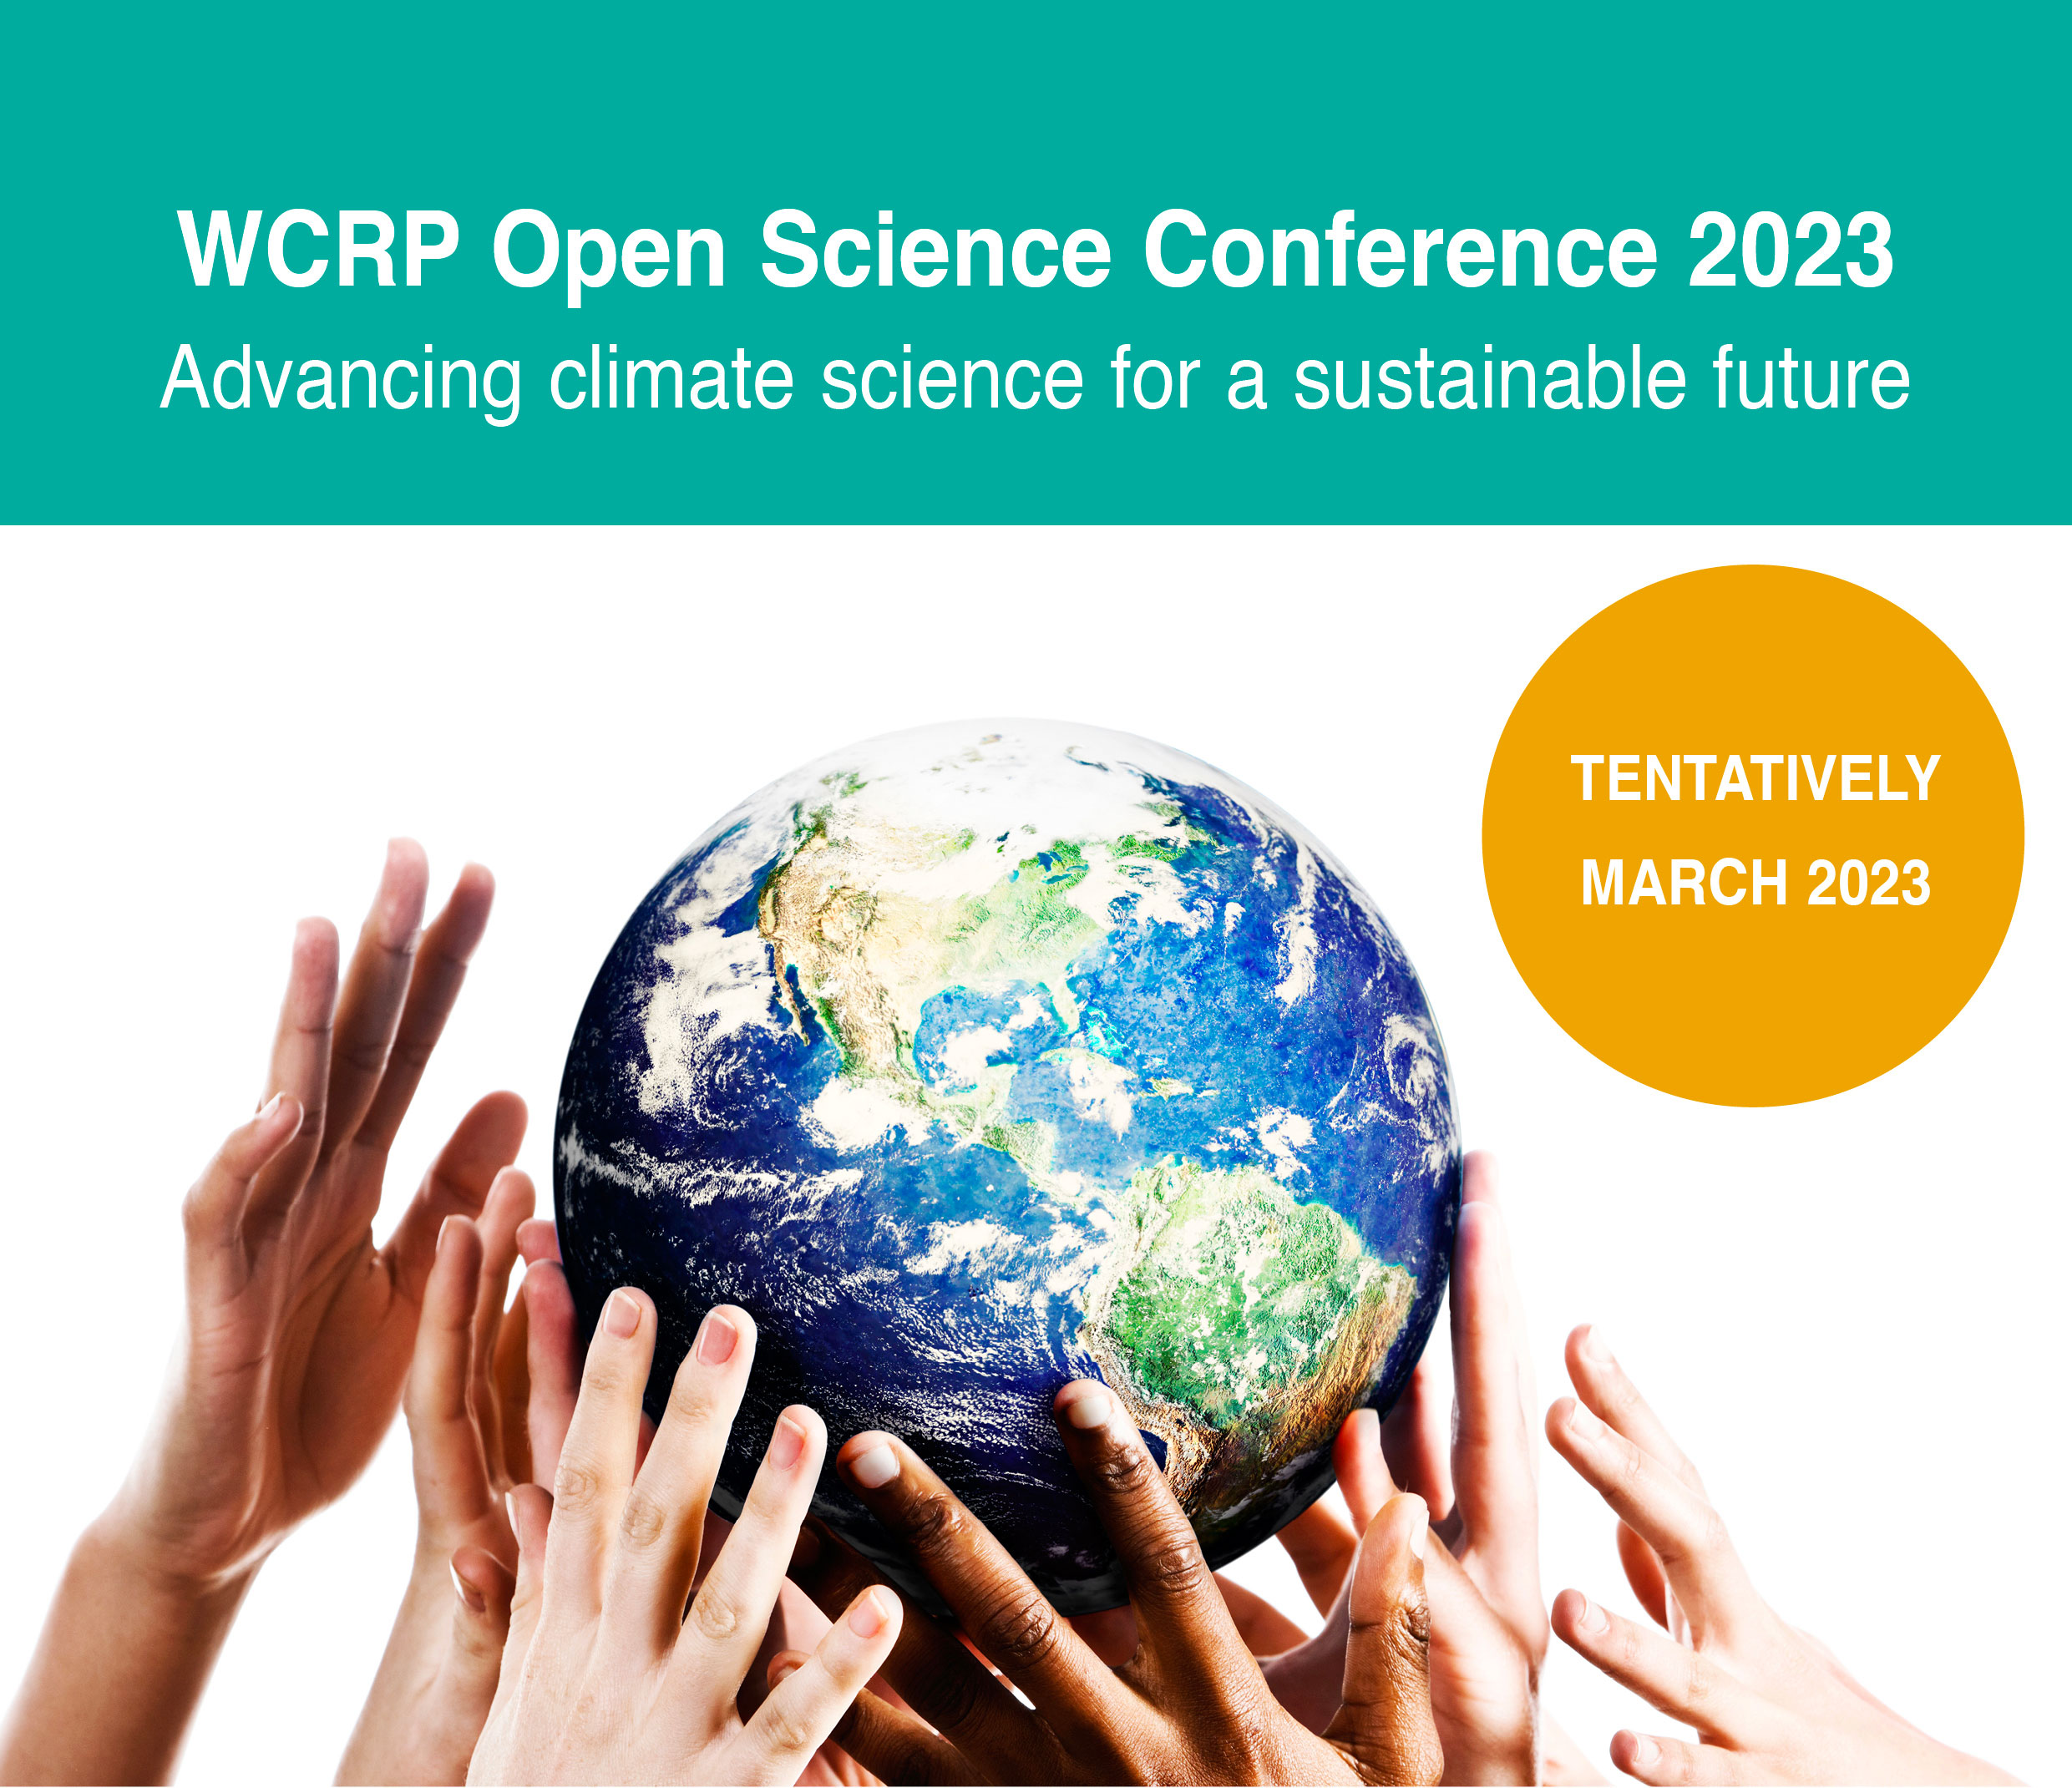 WCRP Open Science Conference 2023